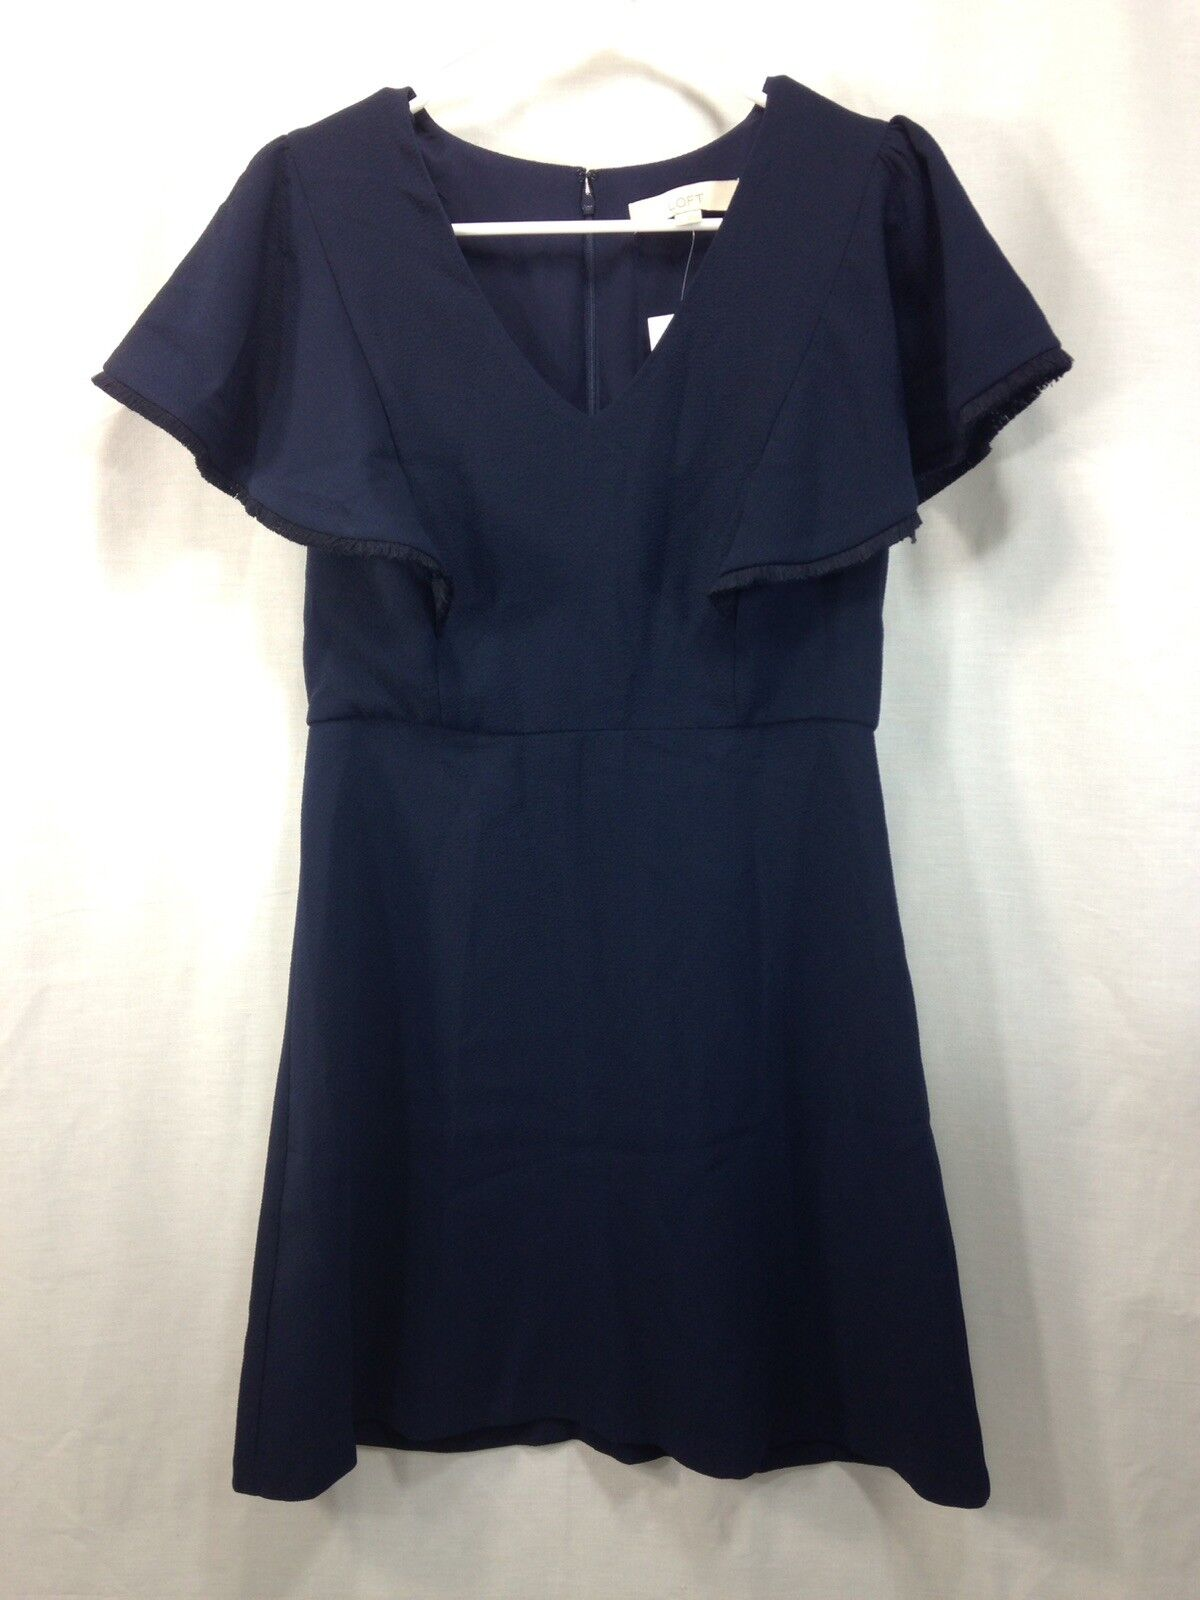 NEW Loft Dress damen Navy Blau Cocktail Formal Short Ruffle Sleeve Poly Spandex